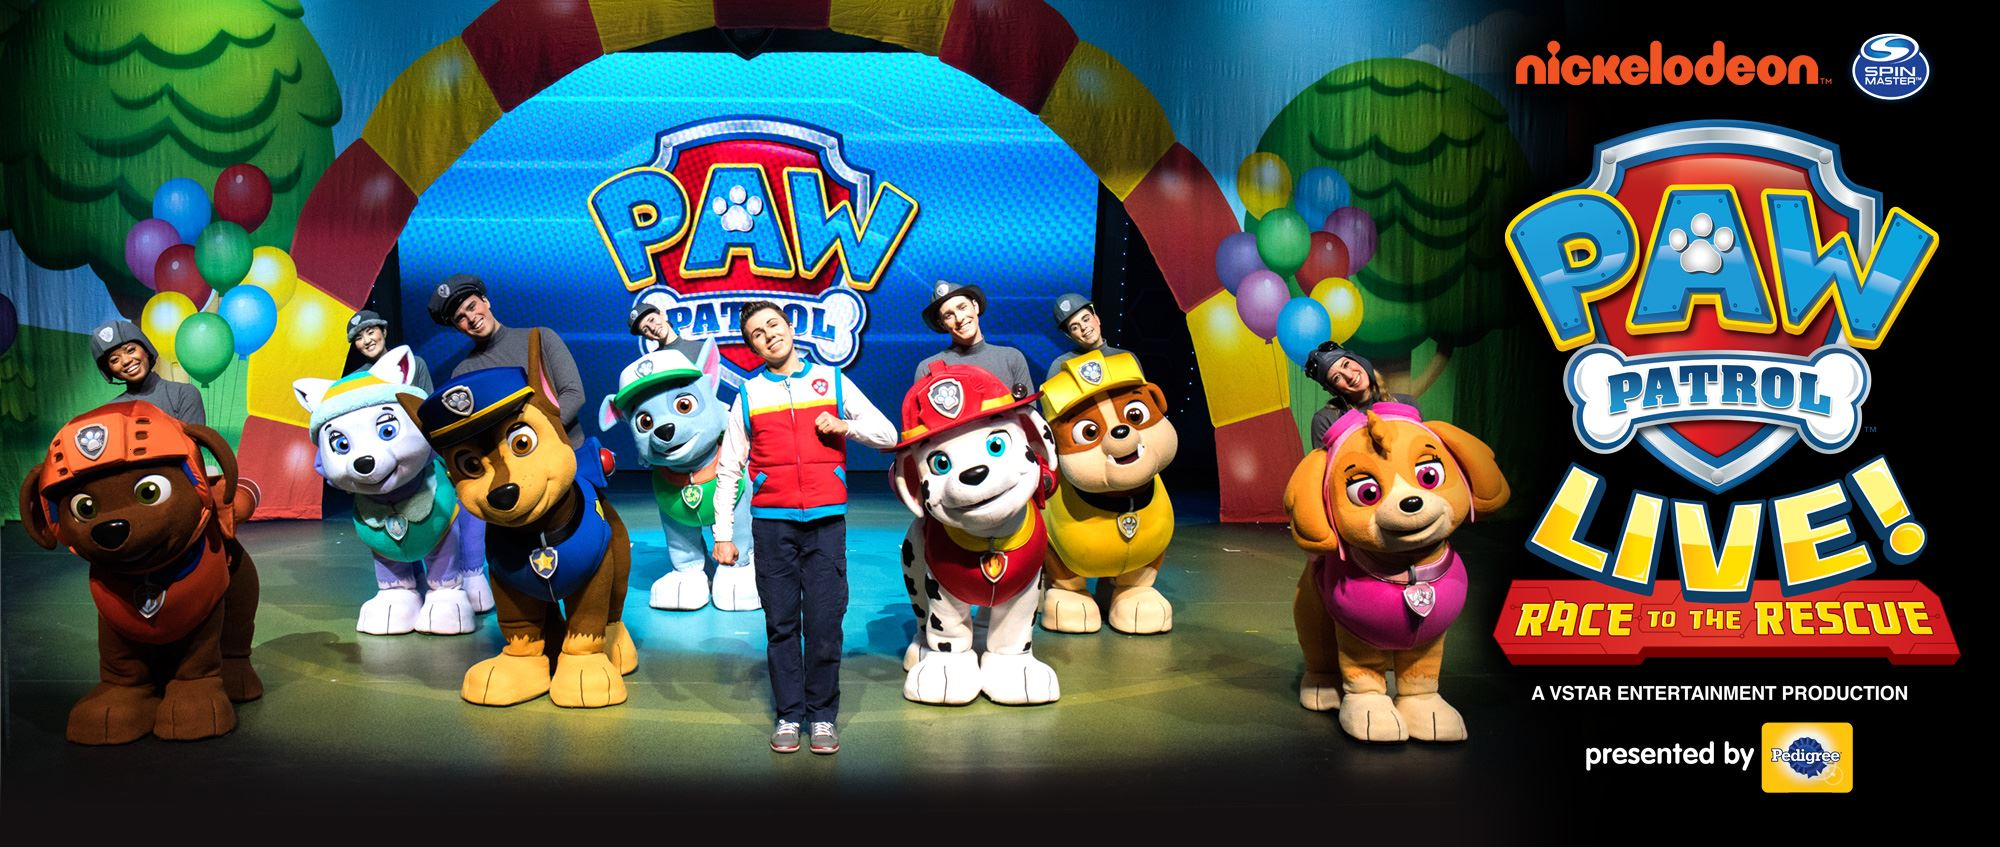 PAW PATROL LIVE!  RACE TO THE RESCUE - Extraco Events Center